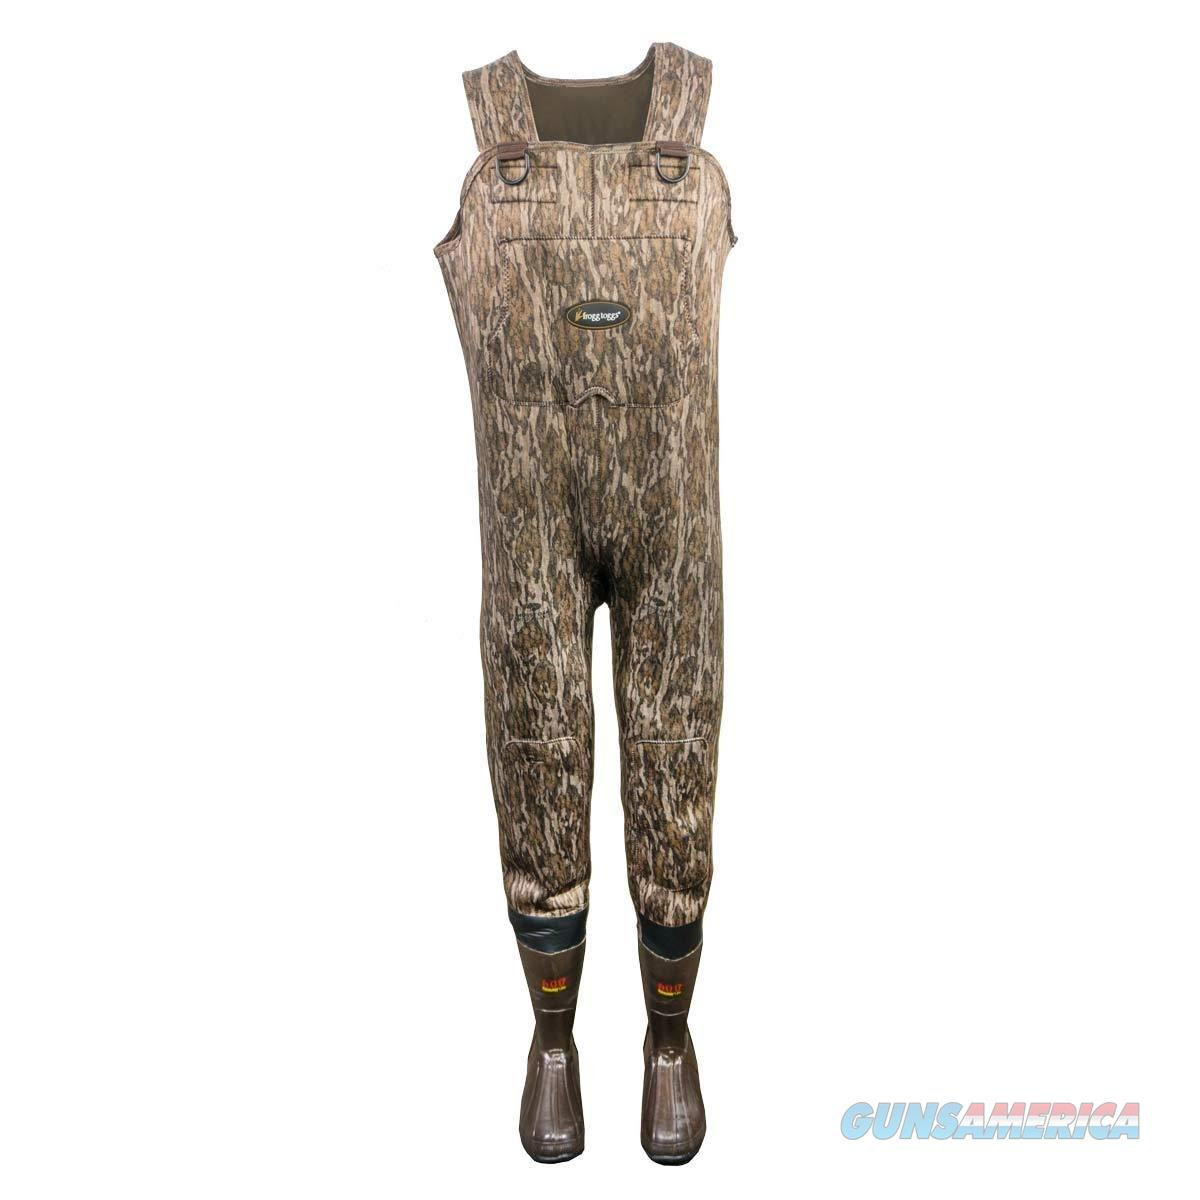 Frogg Toggs Chest Waders Bottomland Size 12  Non-Guns > Hunting Clothing and Equipment > Clothing > Camo Outerwear